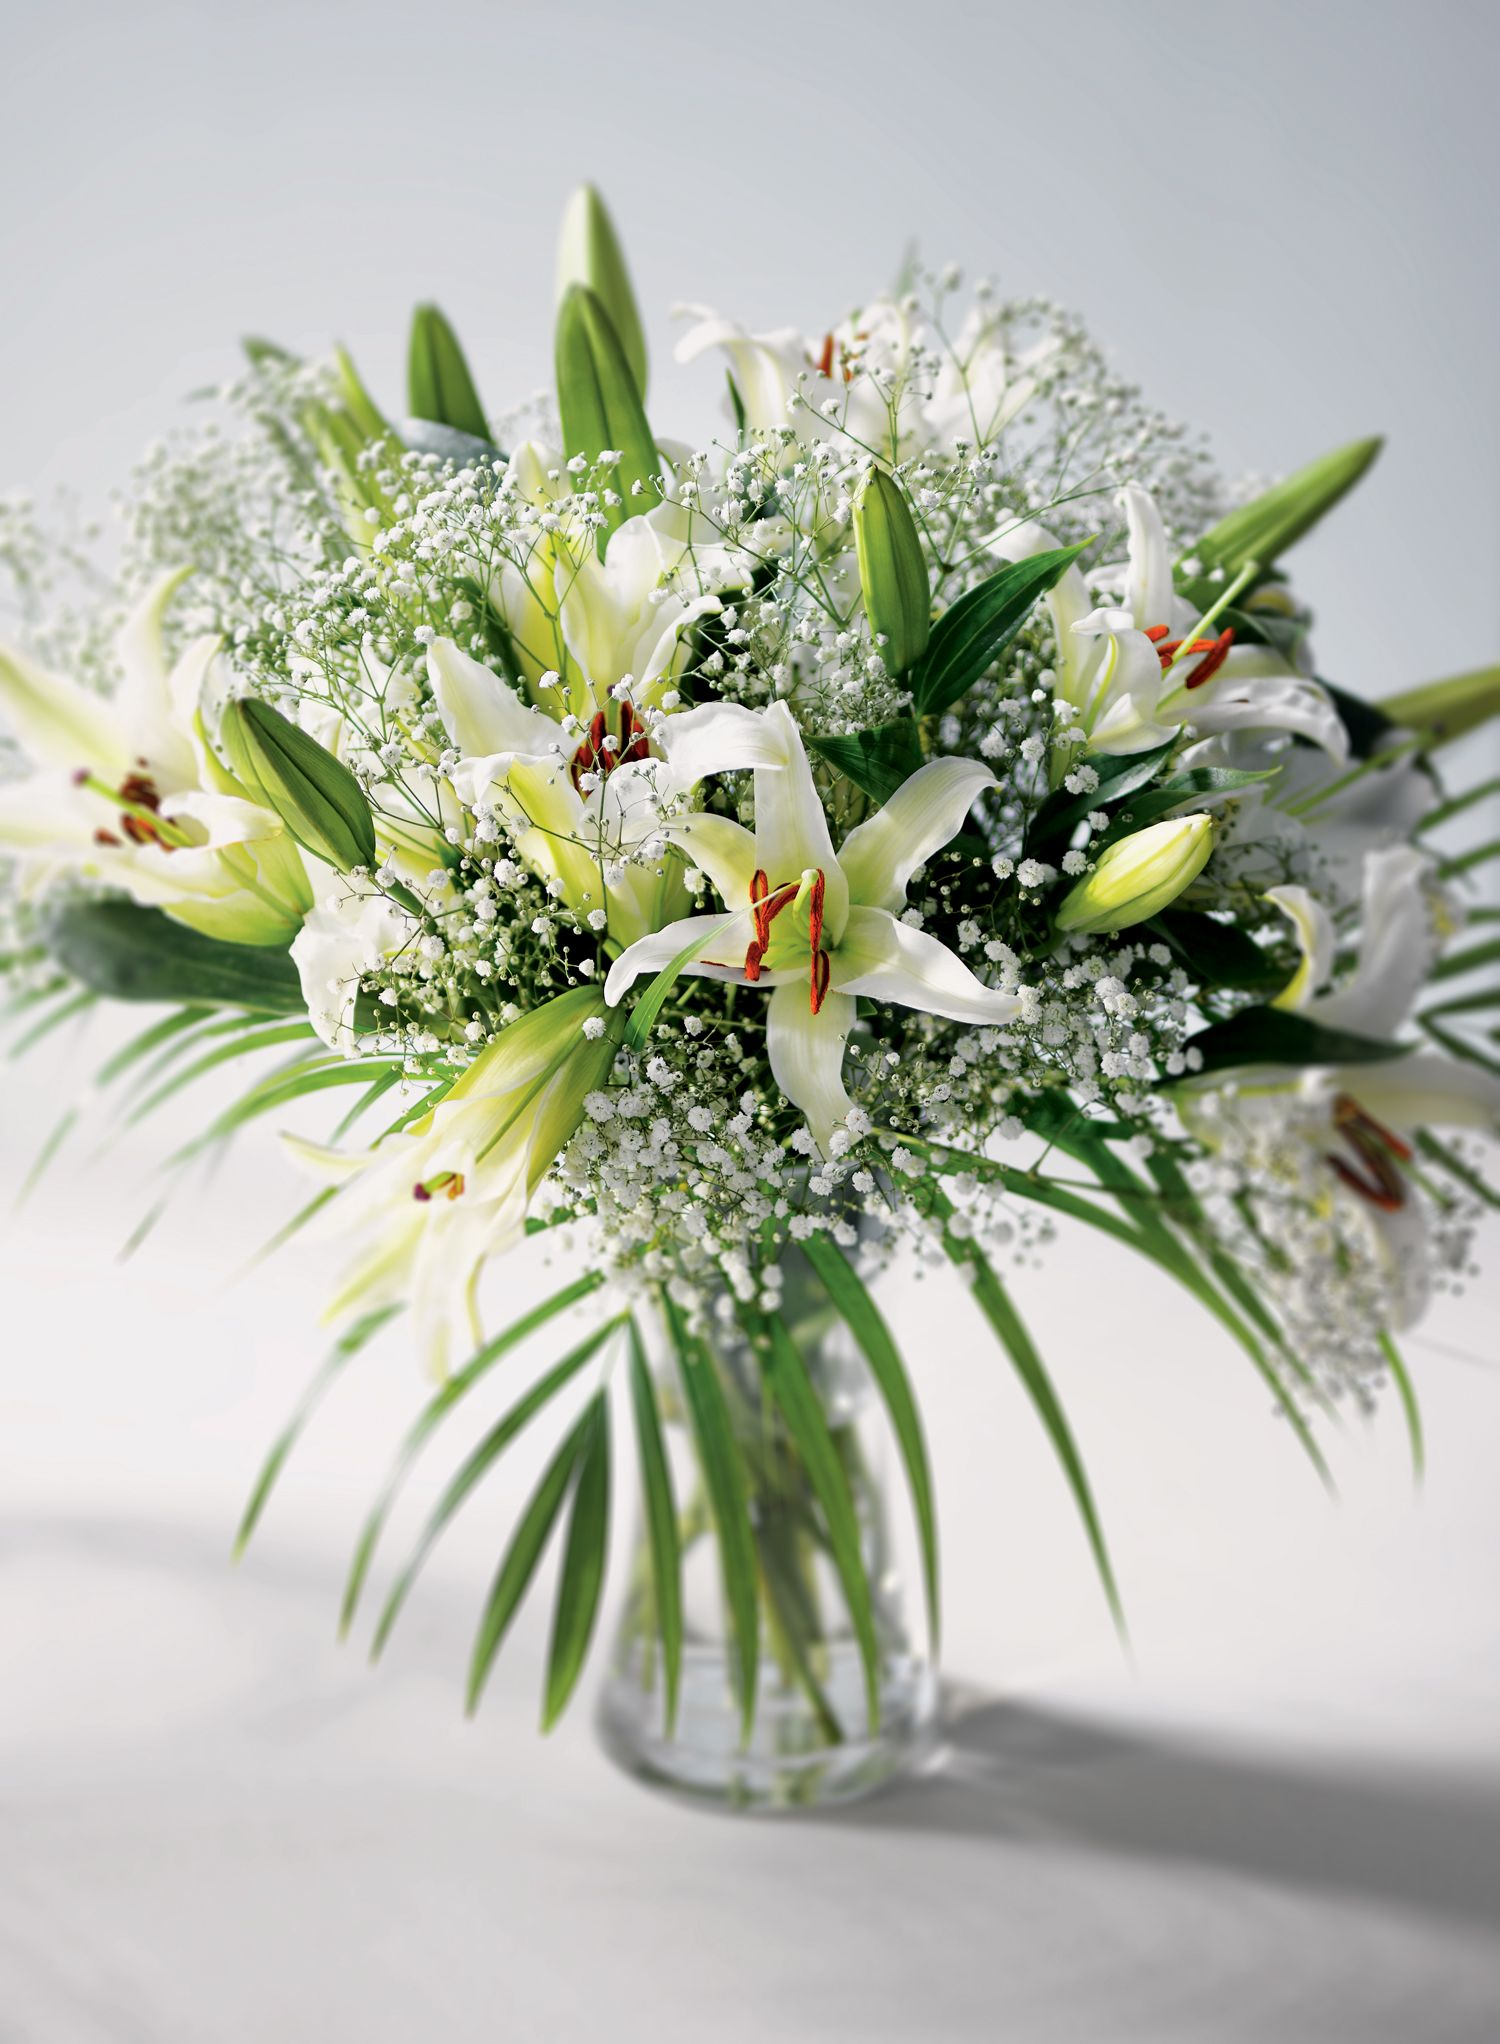 Ch 18 Oh Christian Theyre Beautiful I Love Lilies These Are